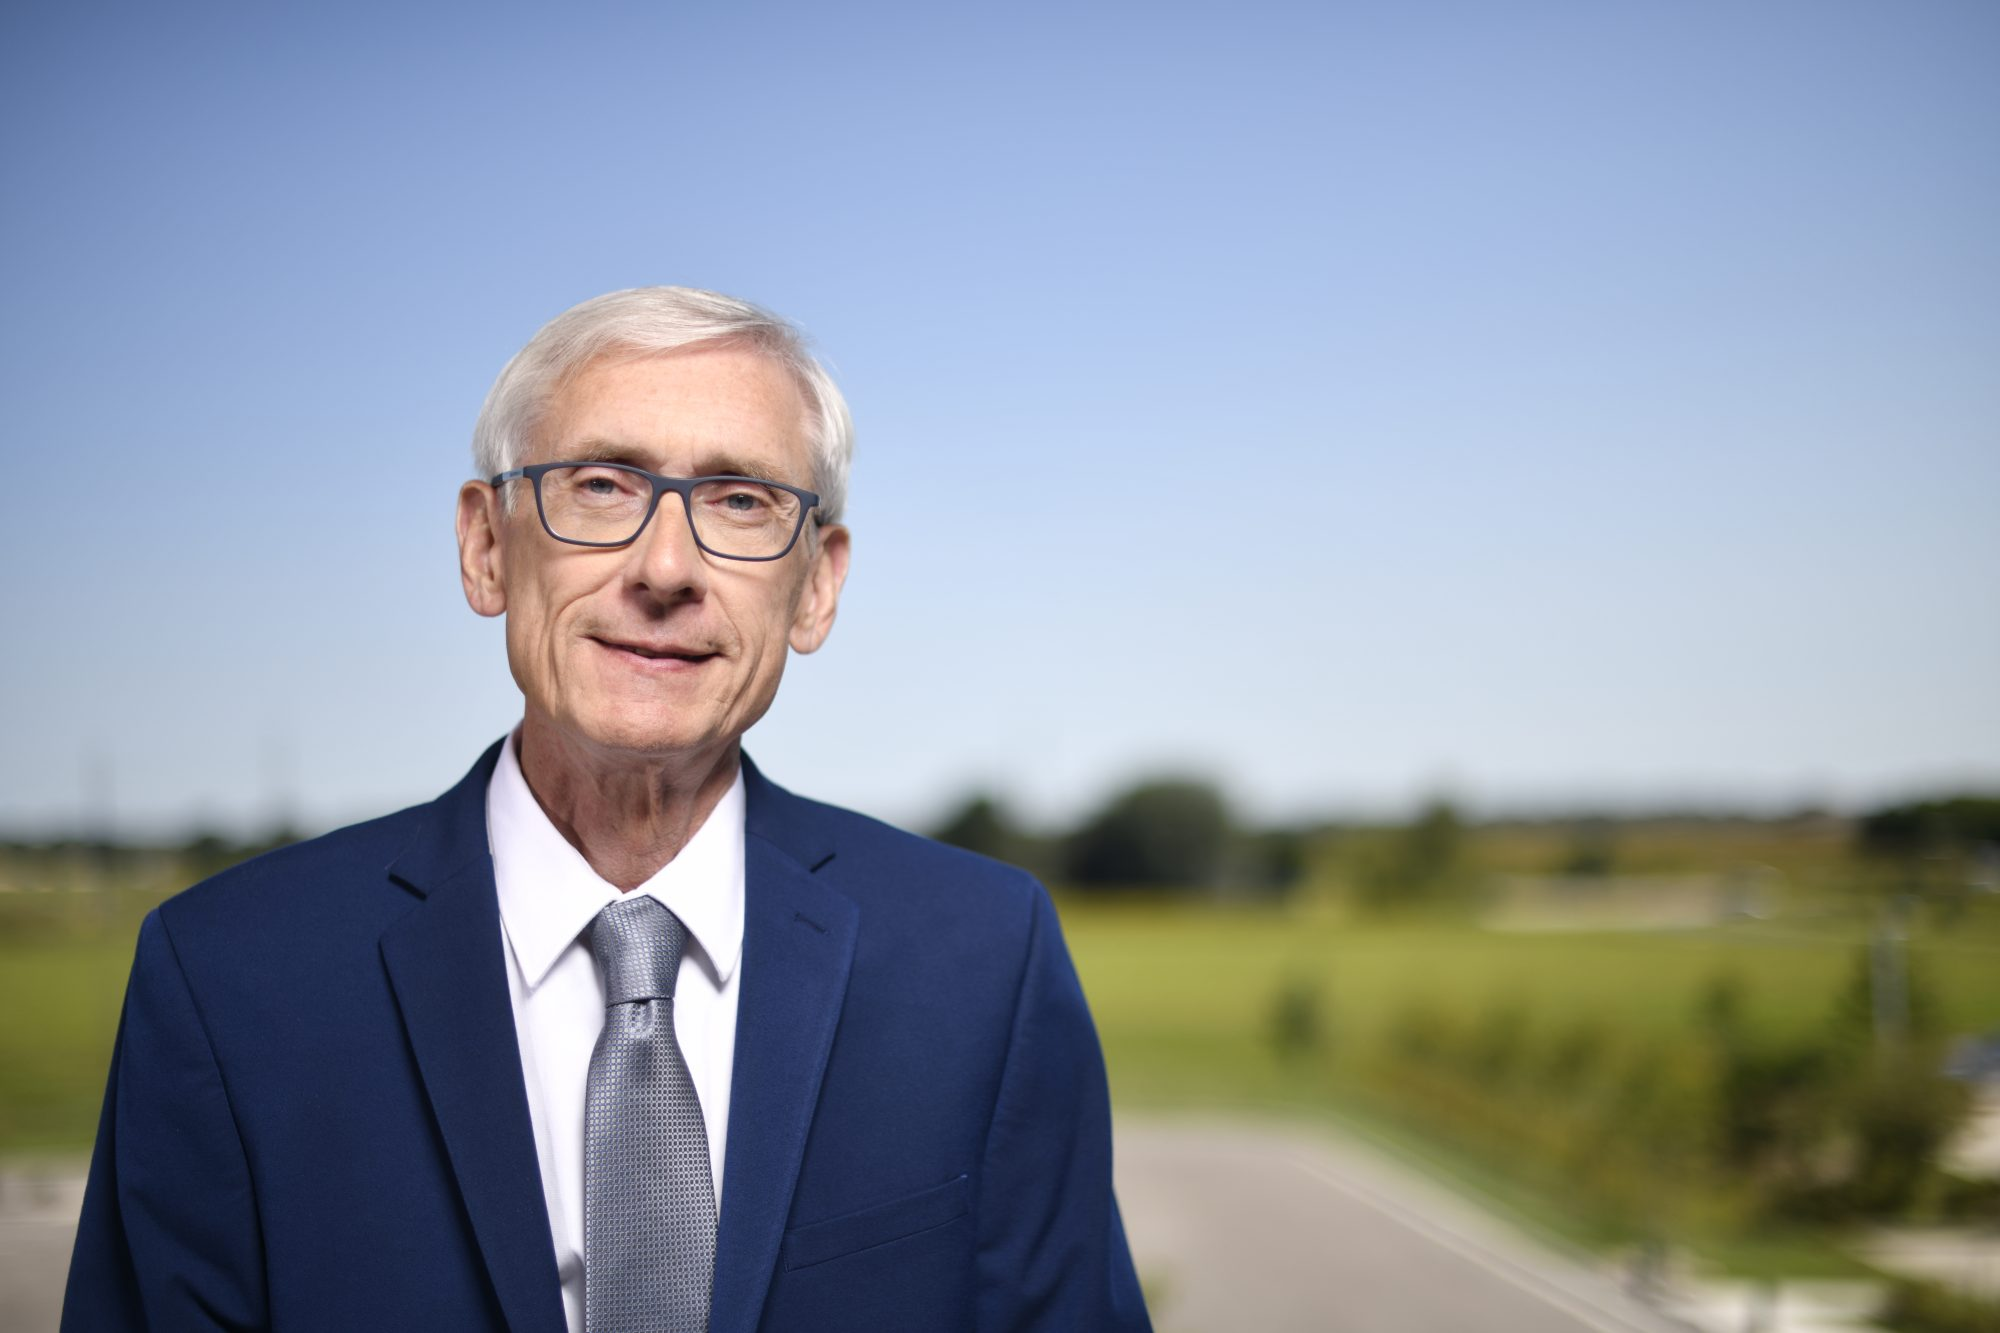 Gov. Evers Provides Update on Investments made in Public Health, Emergency Response, and Economic Stabilization